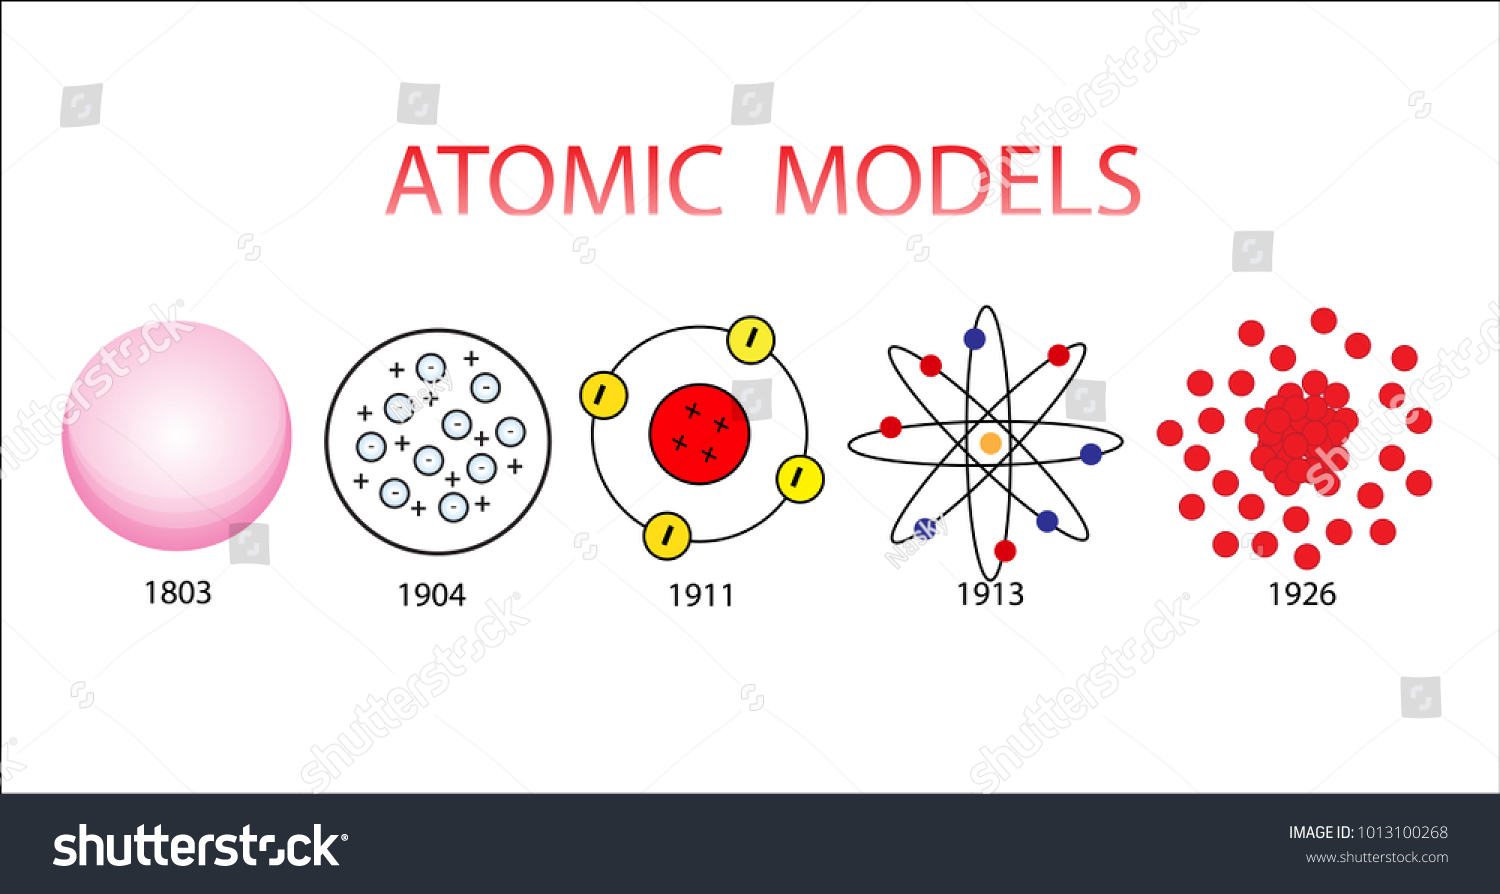 Atomic model physics atom diagram stock vector royalty free atomic model physics atom diagram ccuart